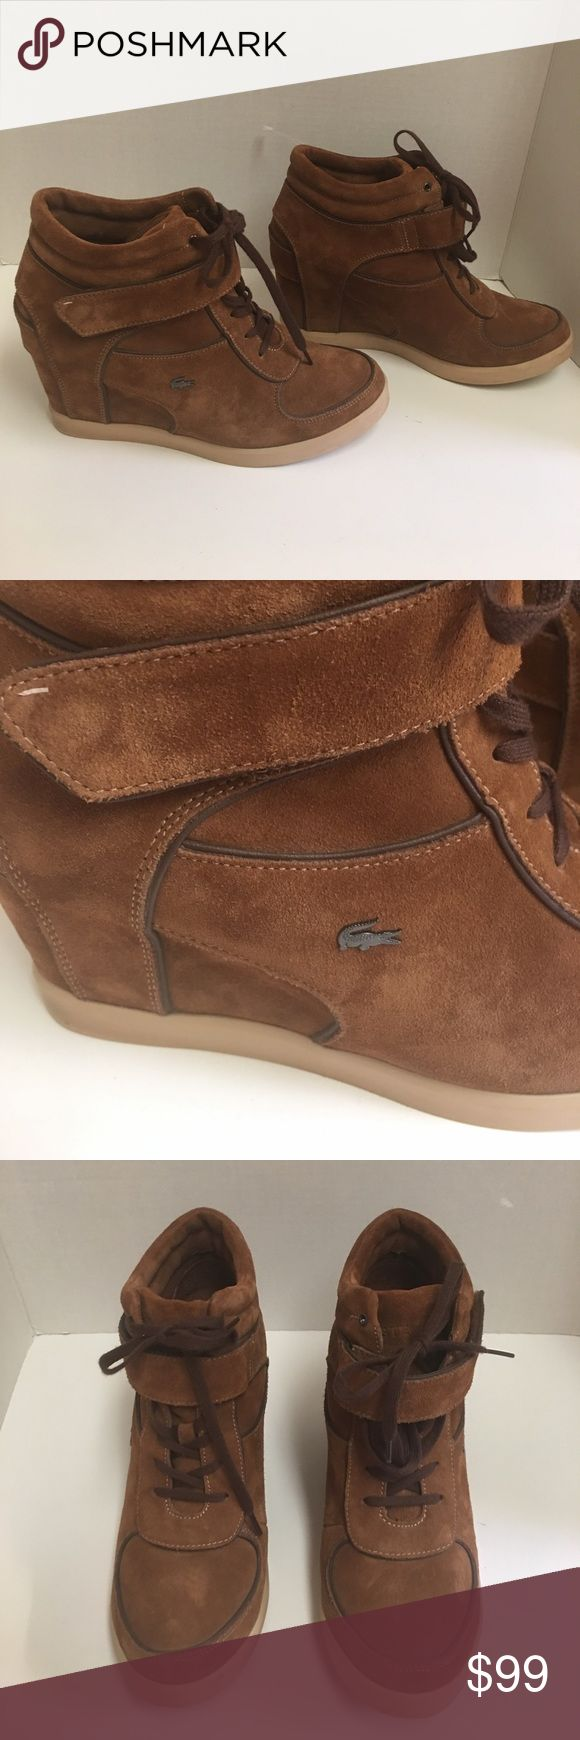 Lacoste Berdine 5 SRW brown suede wedge sneakers This is the fabulous Lacosta women's Berdine 5  suede wedge sneaker.  3 inch covered heal. Rubber outersole and lace up closure. Velcro strap. Lacosta emblem on the side. These are in excellent condition. Lacoste Shoes Athletic Shoes